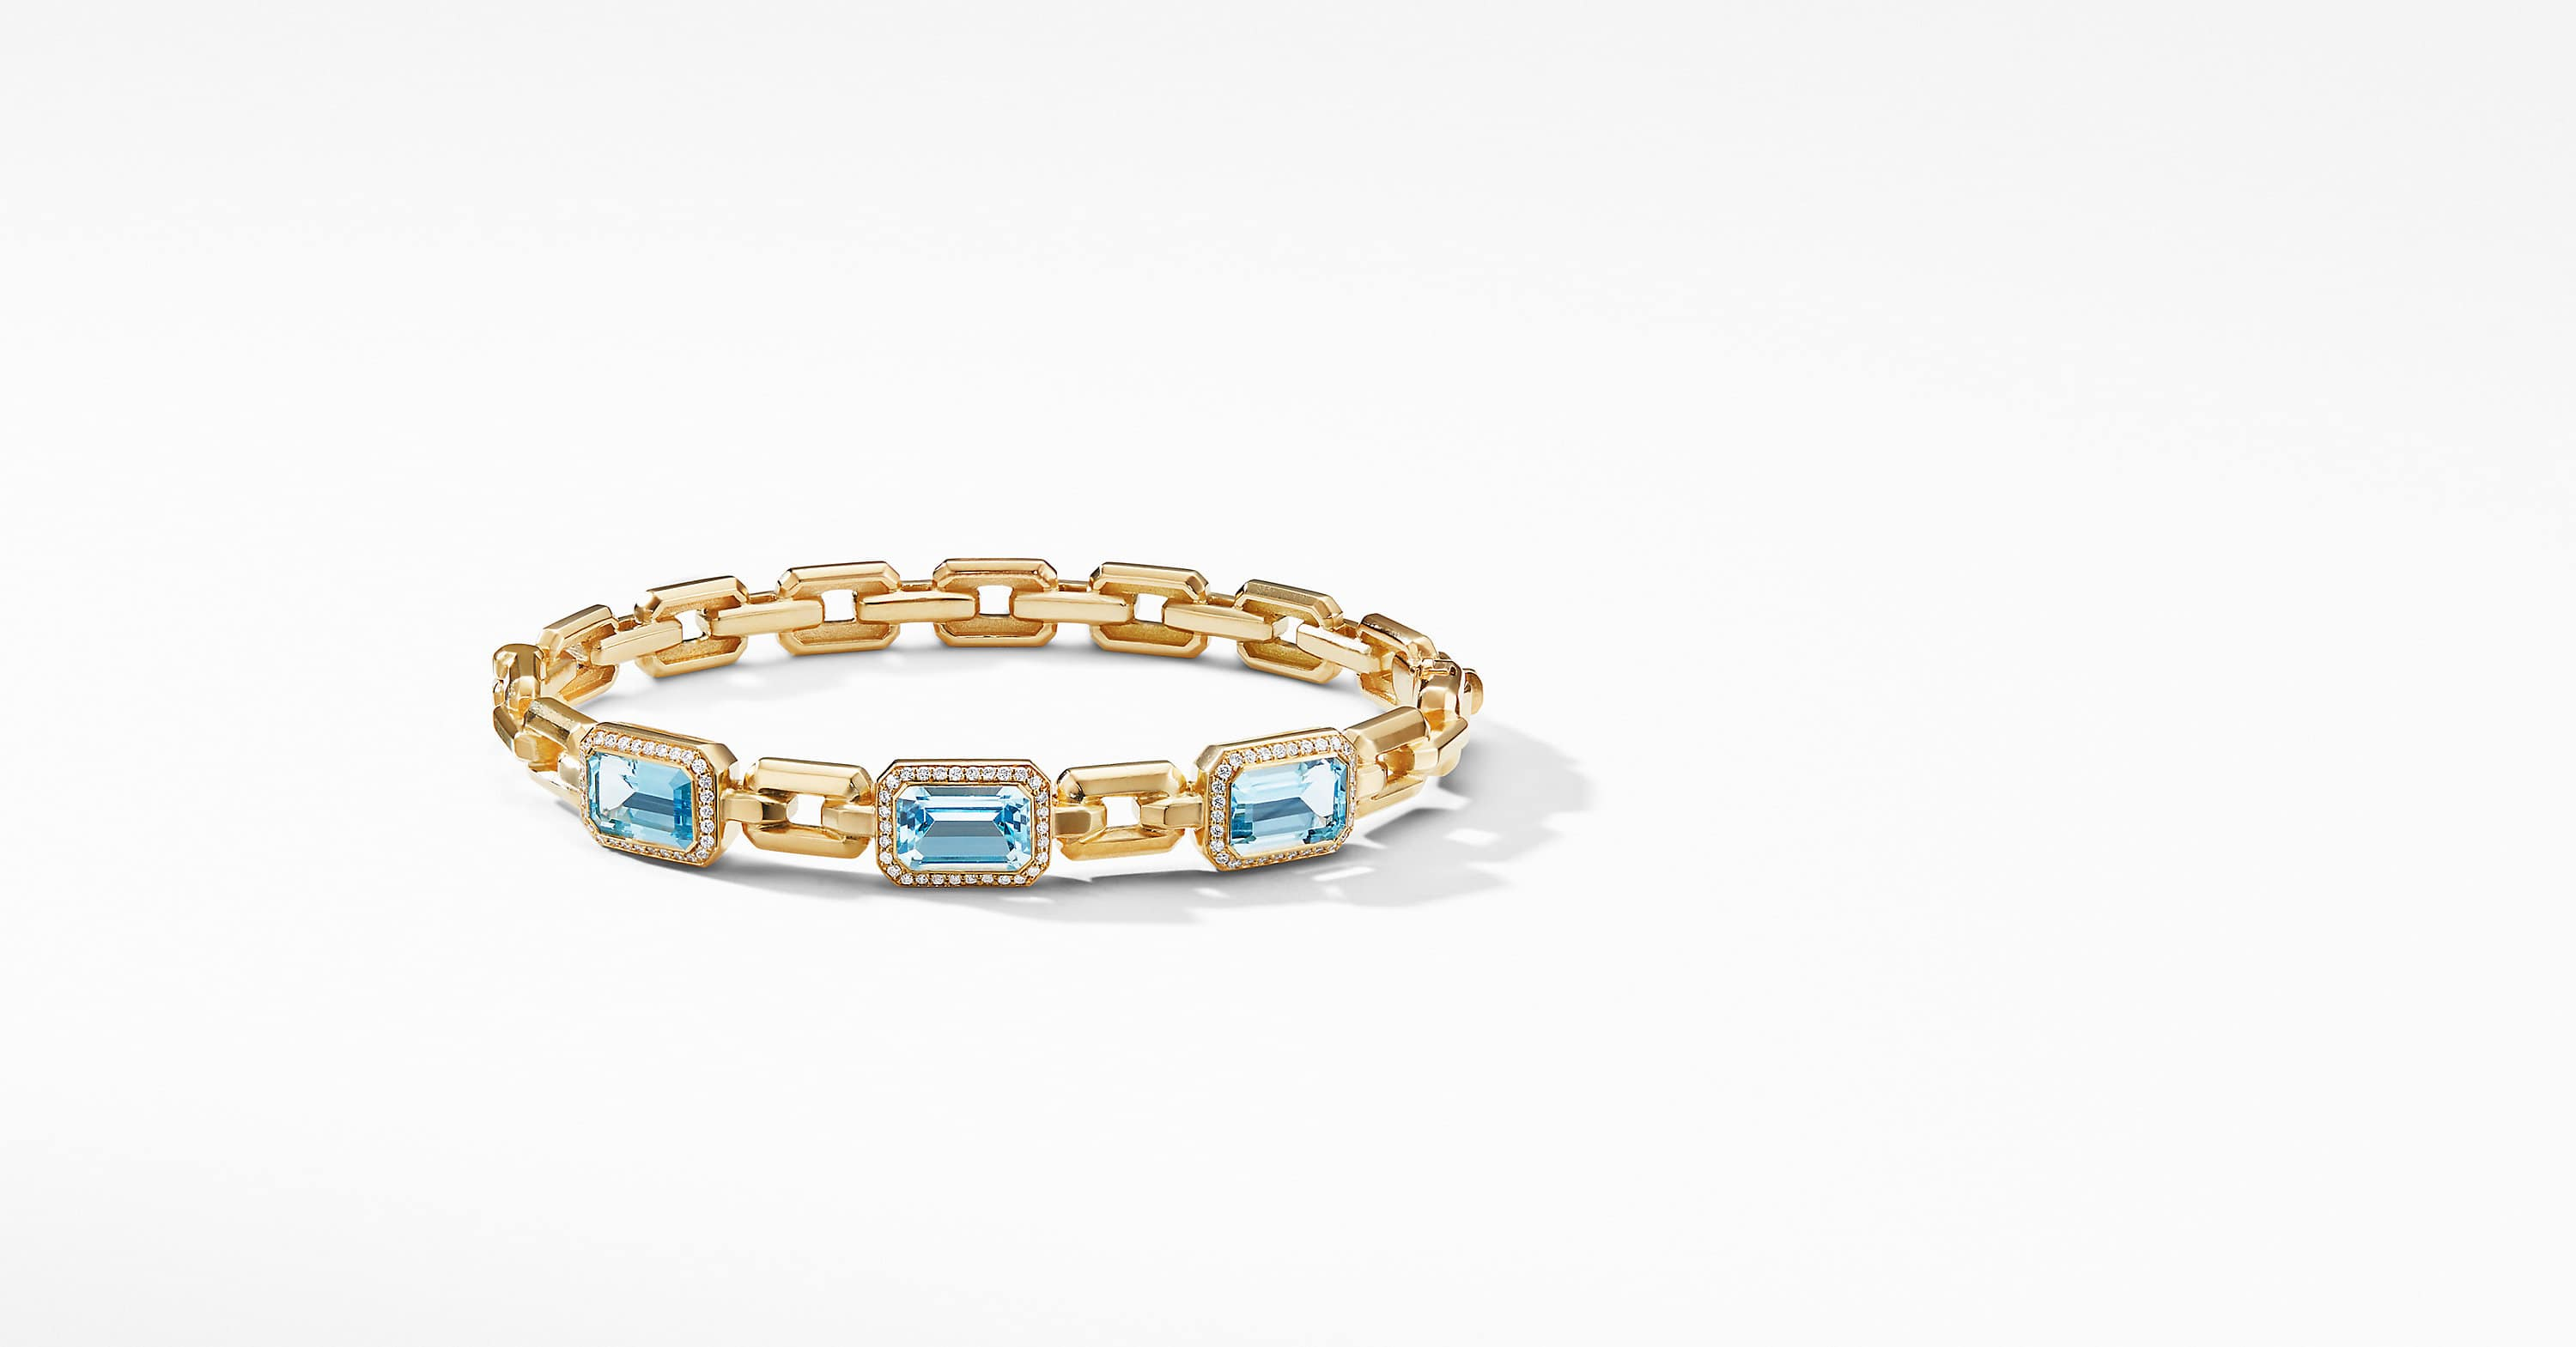 Novella Three Stone Bracelet in 18K Yellow Gold with Diamonds